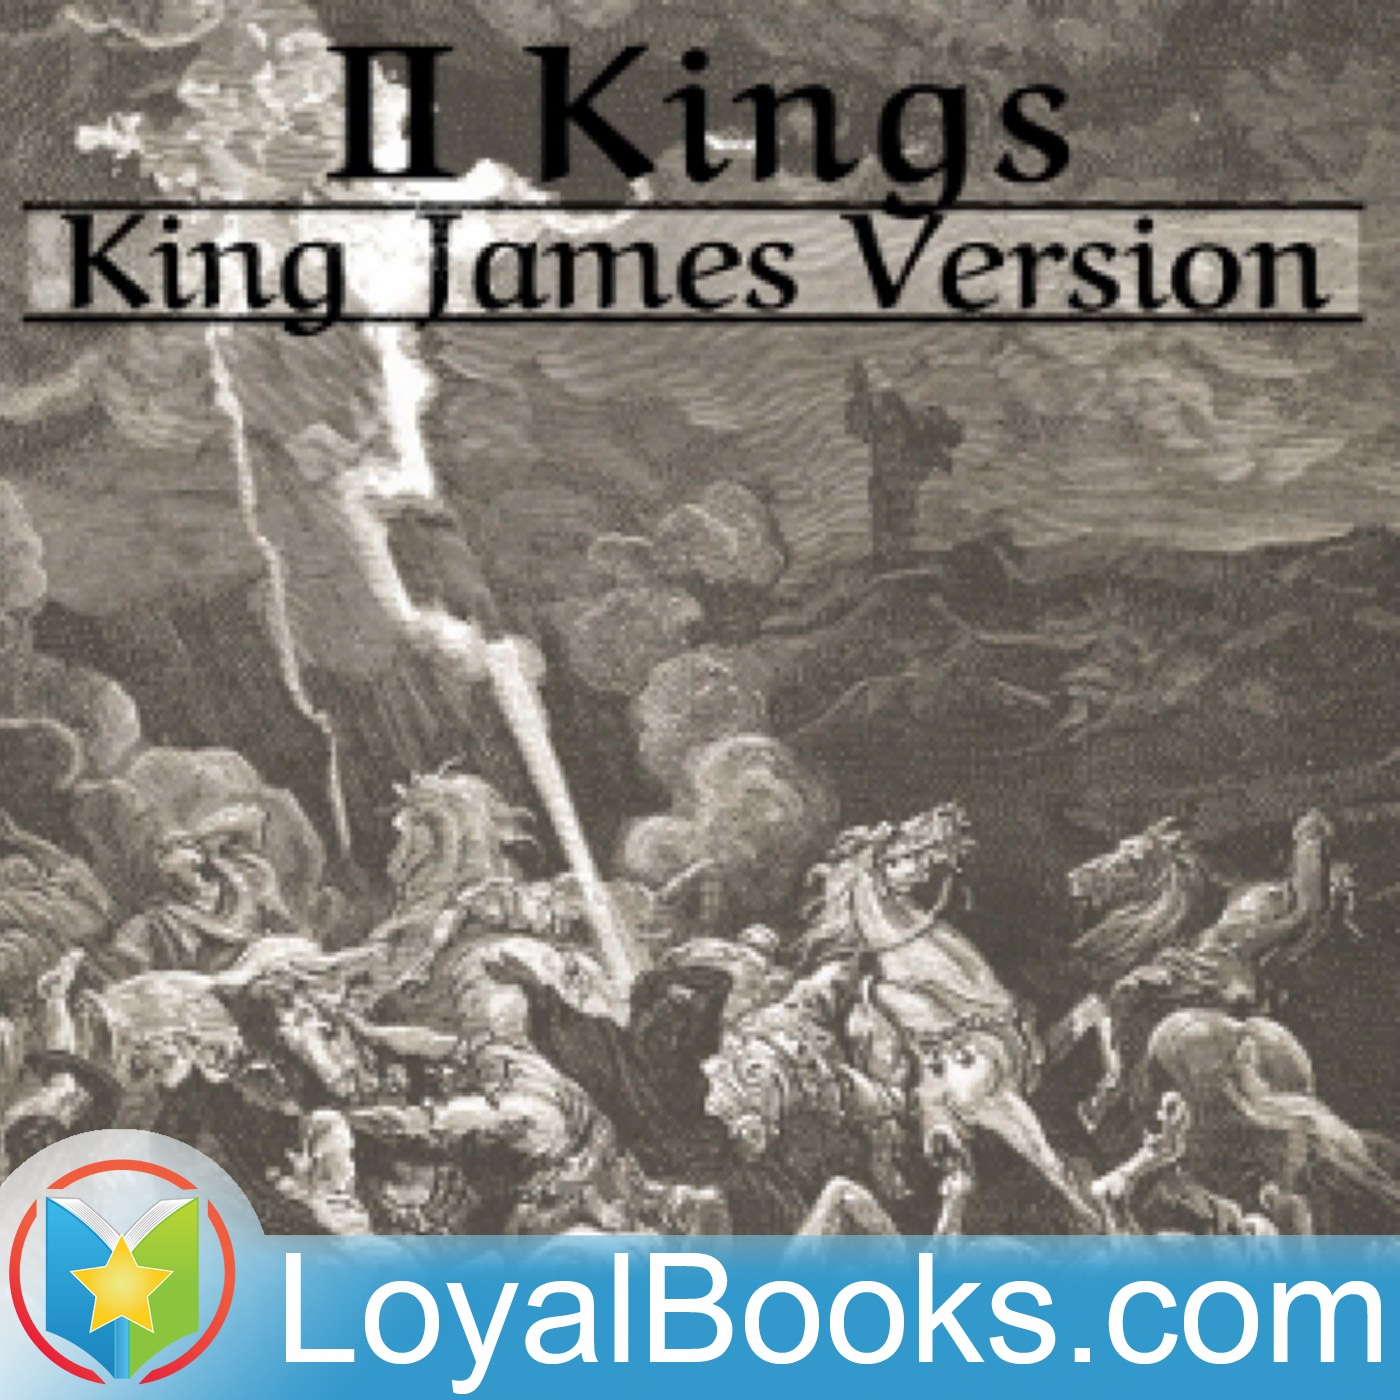 an overview of israels king james version of bible